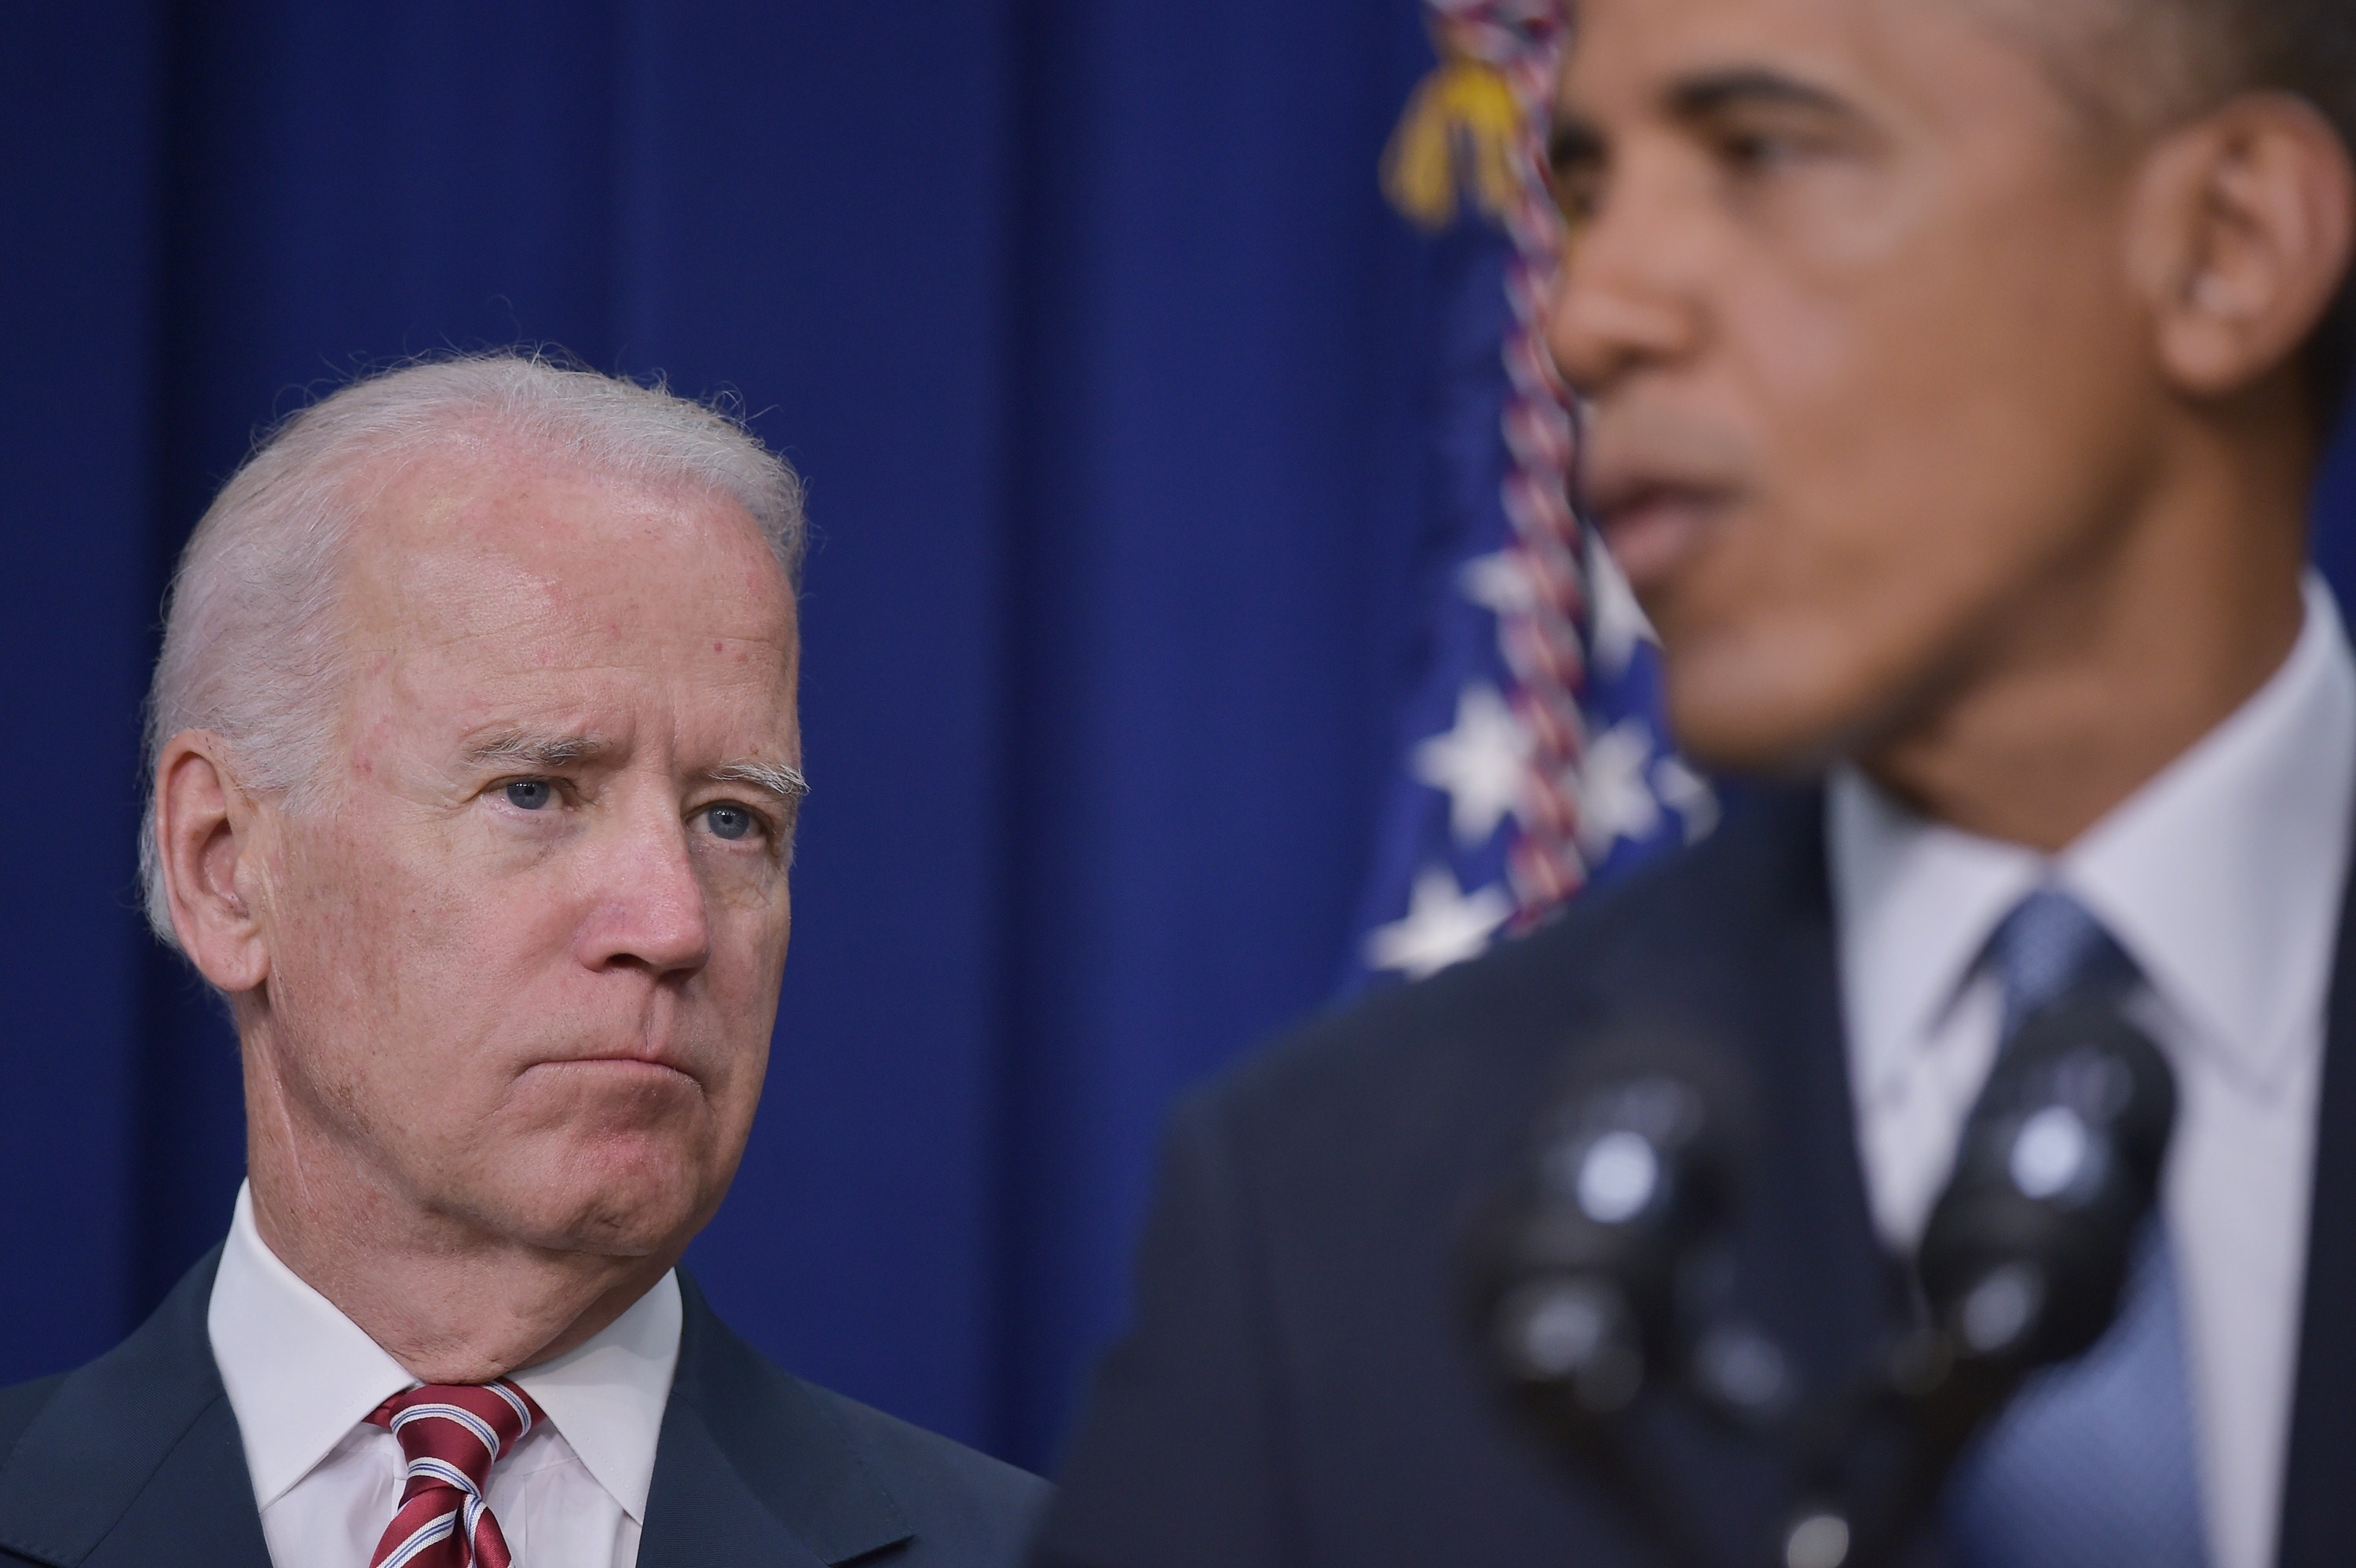 Vice President Joe Biden watches as President Barack Obama speaks during a signing ceremony for H.R. 803, the Workforce Innovation and Opportunity Act, on July 22, 2014 in the South Court Auditorium of the Eisenhower Executive Office Building, next to the White House in Washington, DC.